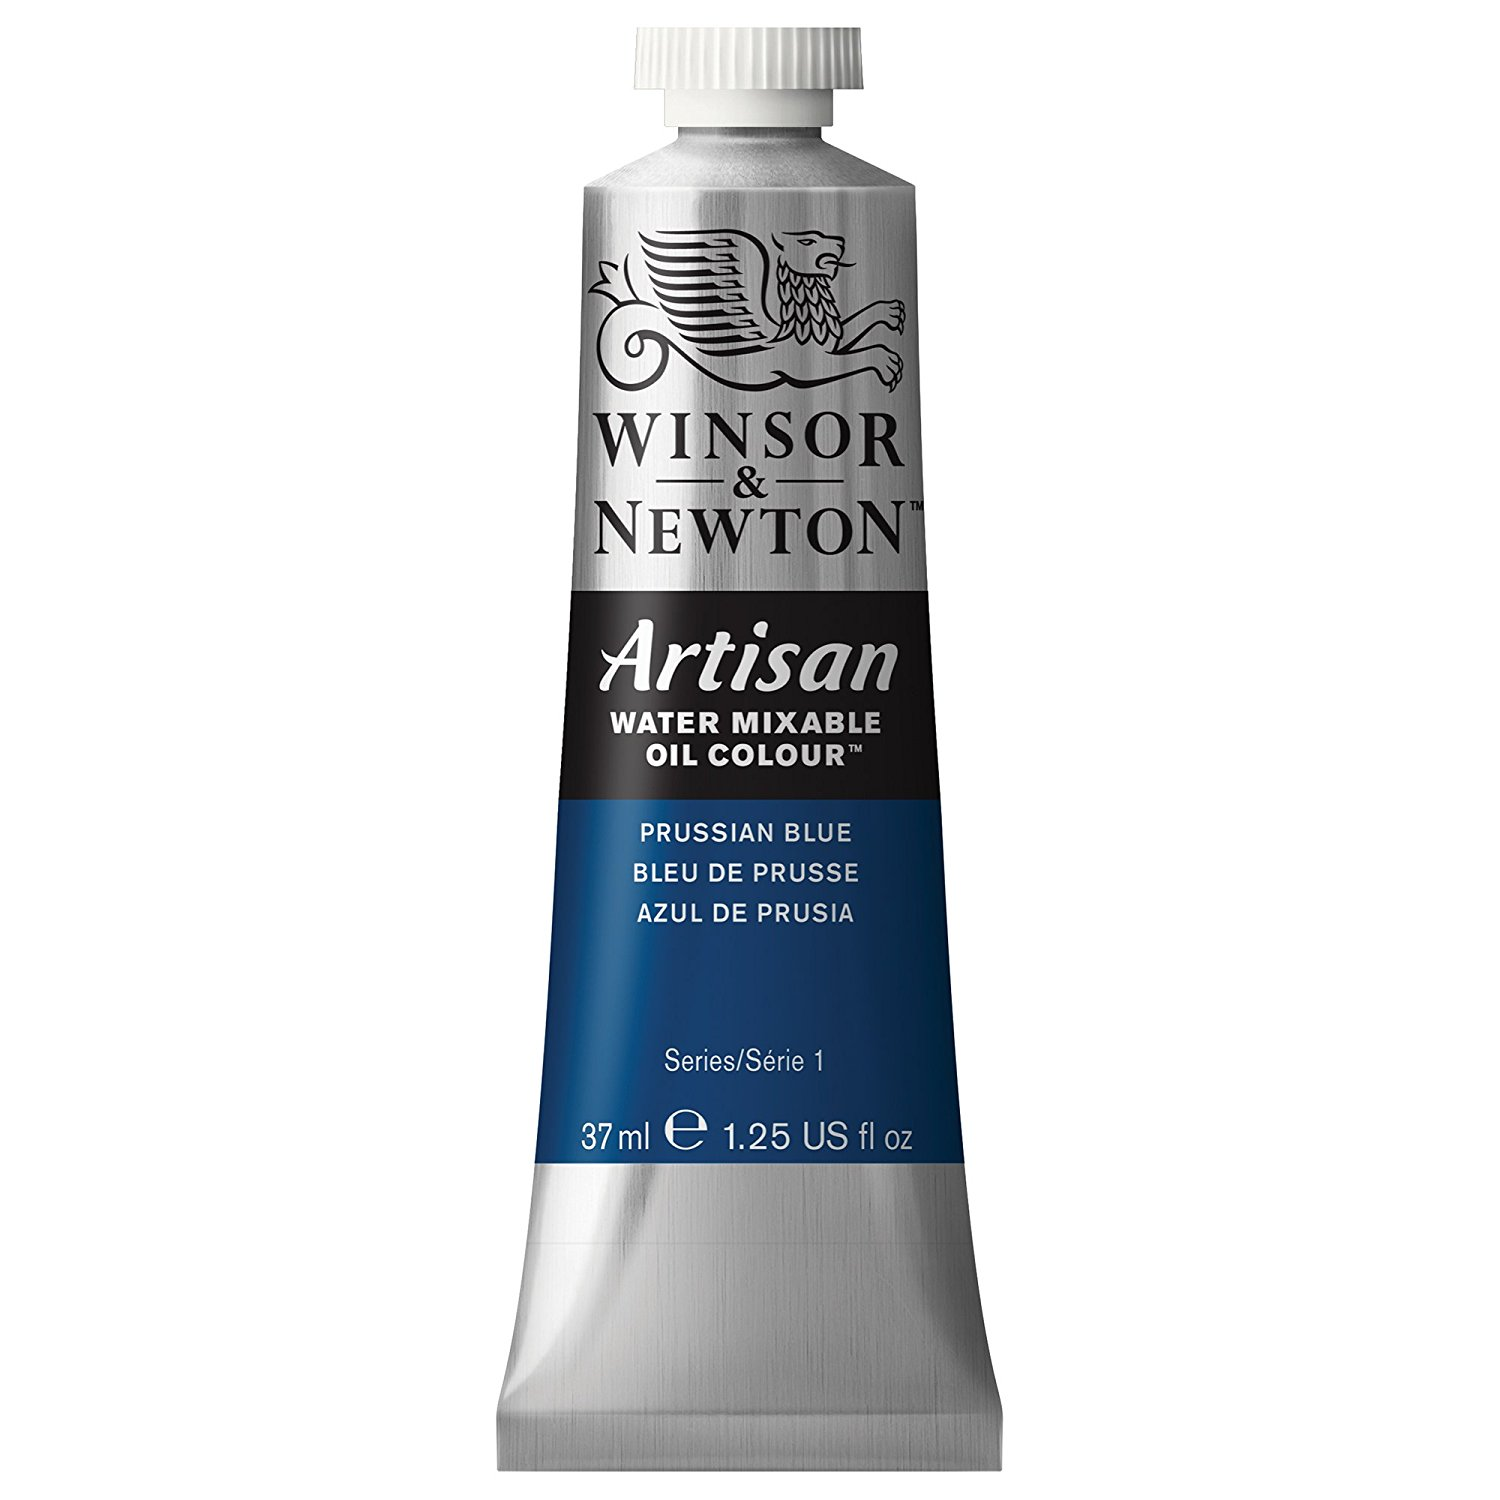 Winsor & Newton Oil Paint: Water Mixable, Prussian Blue, 37 mL